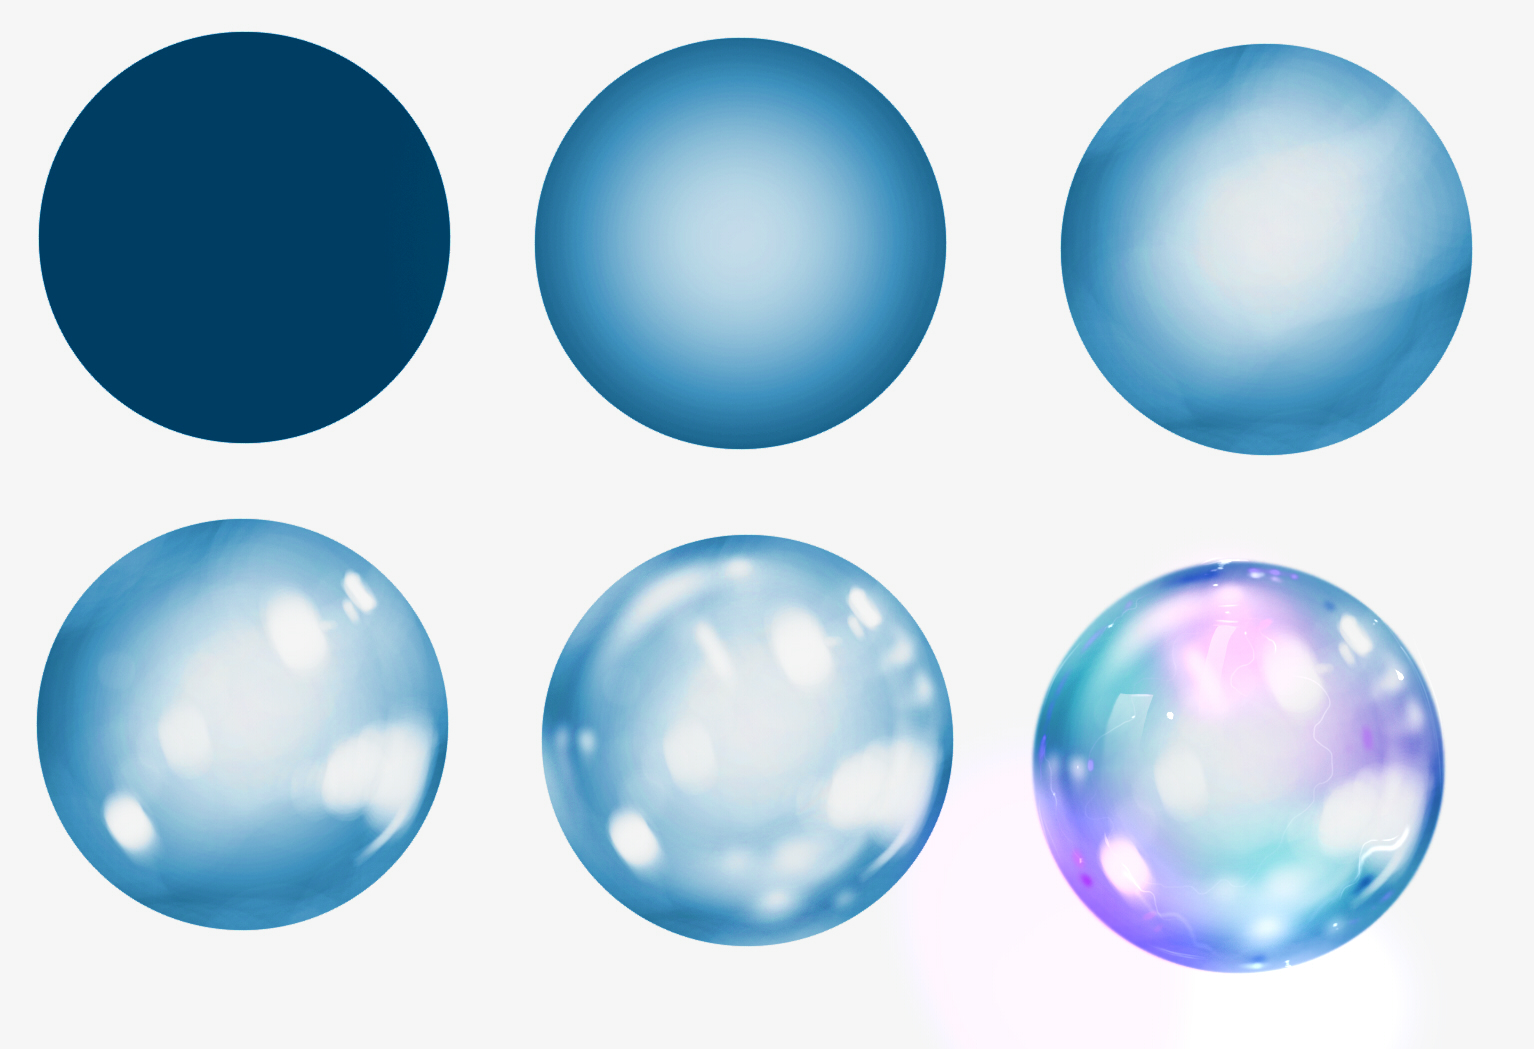 Bubble Step By Step 2 By Ryky On Deviantart